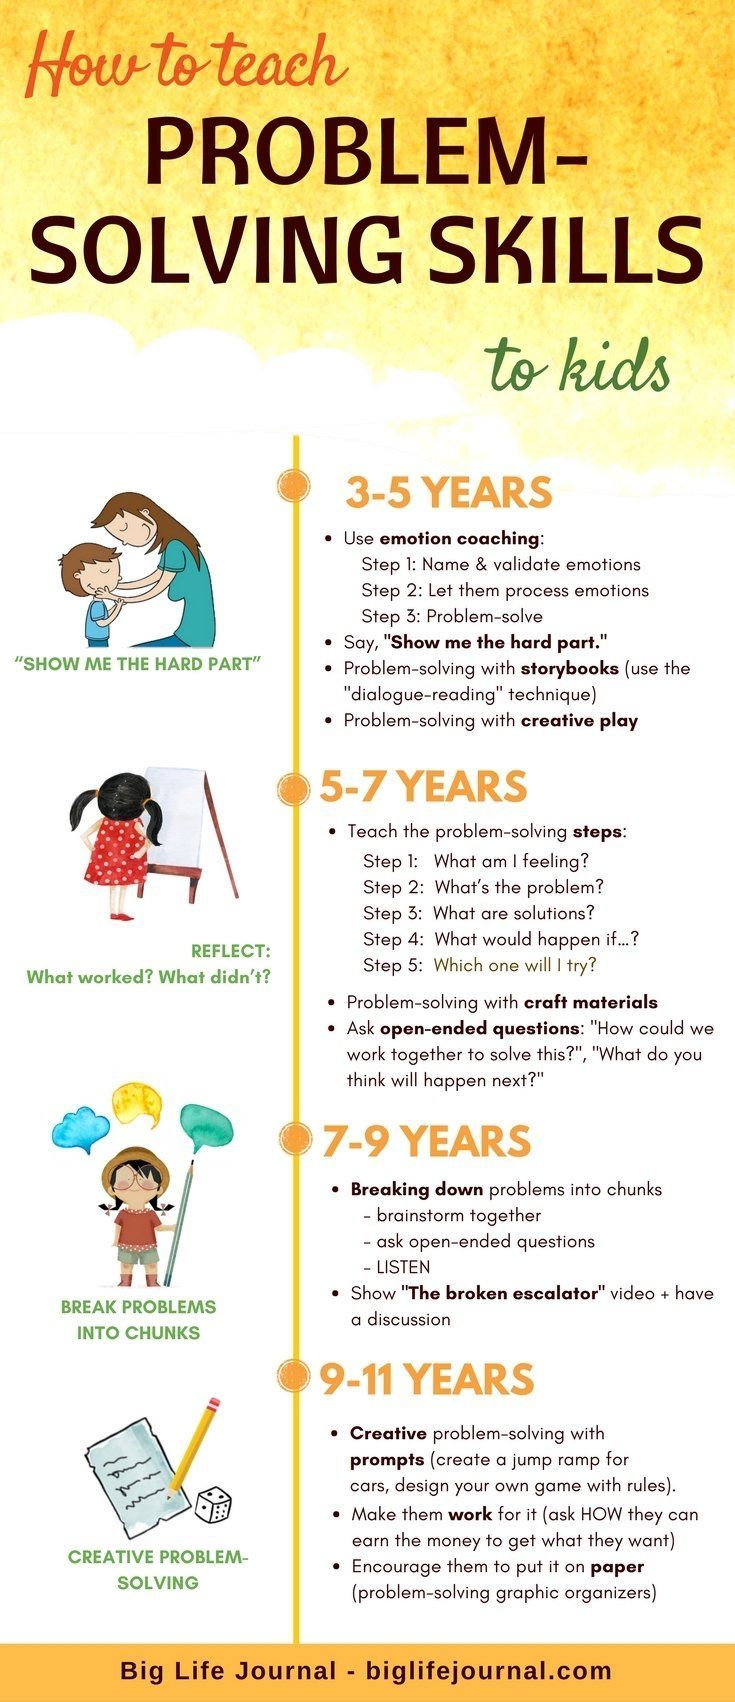 Problems with growth in a child: advice to parents